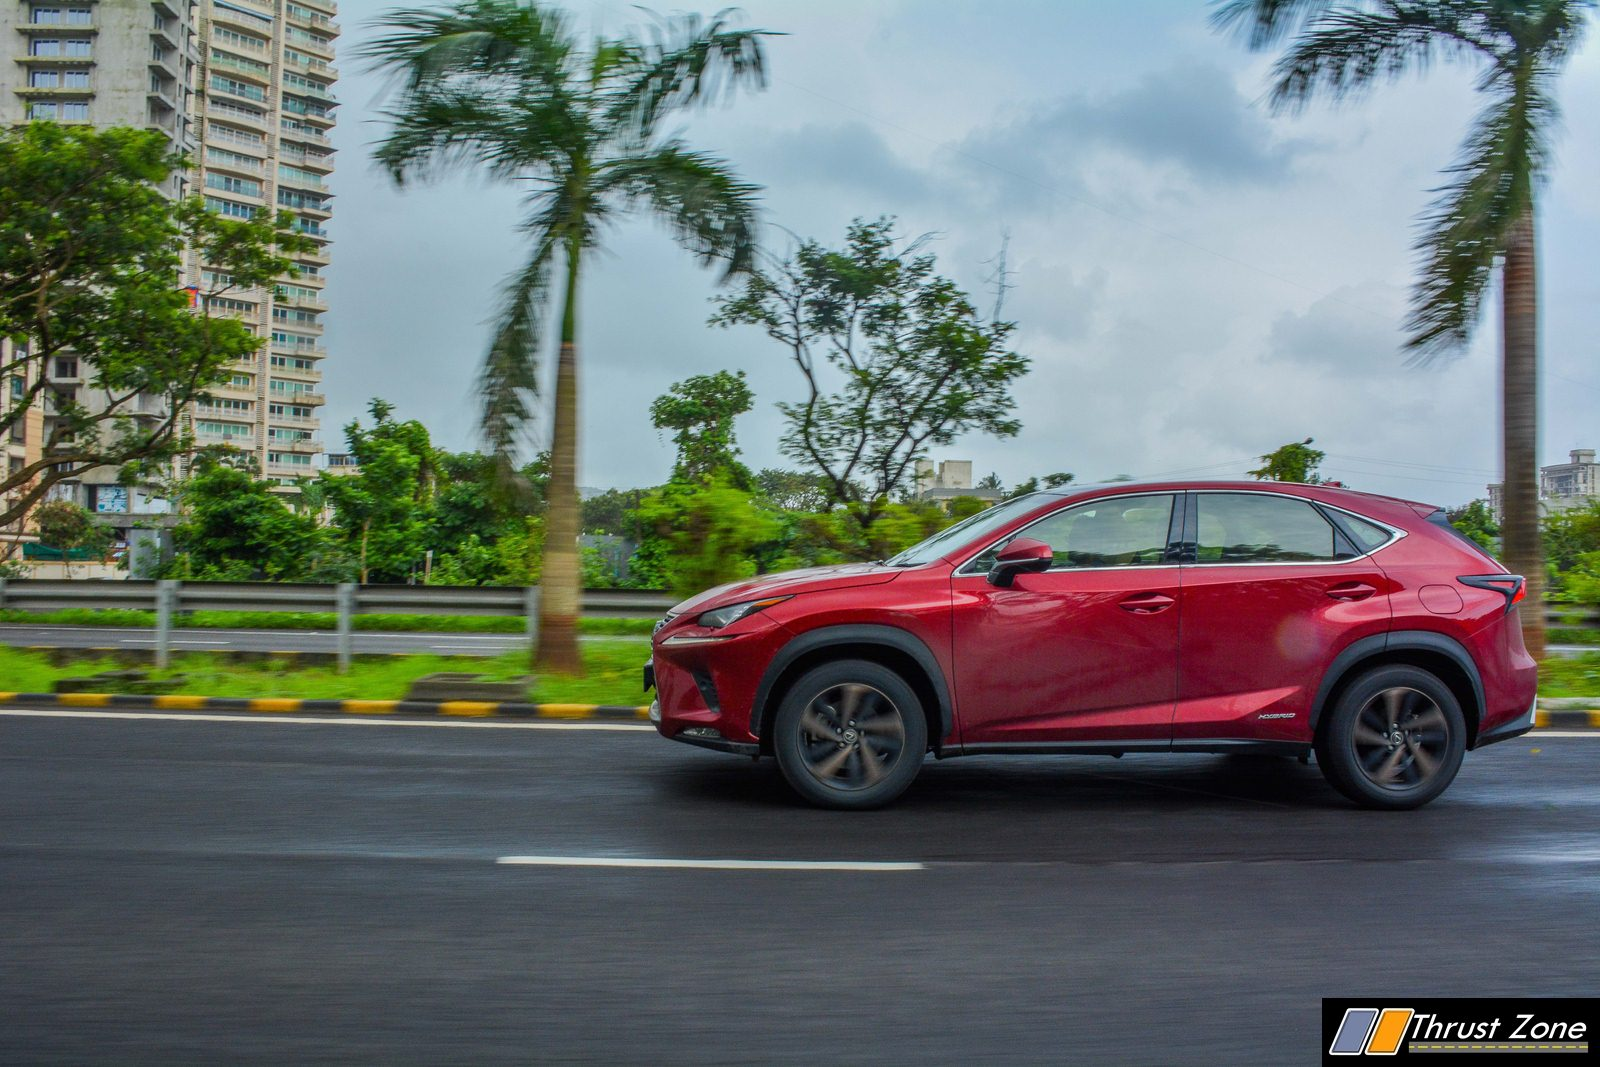 https://www.thrustzone.com/wp-content/uploads/2018/07/2018-Lexus-NX300h-India-Review-8.jpg